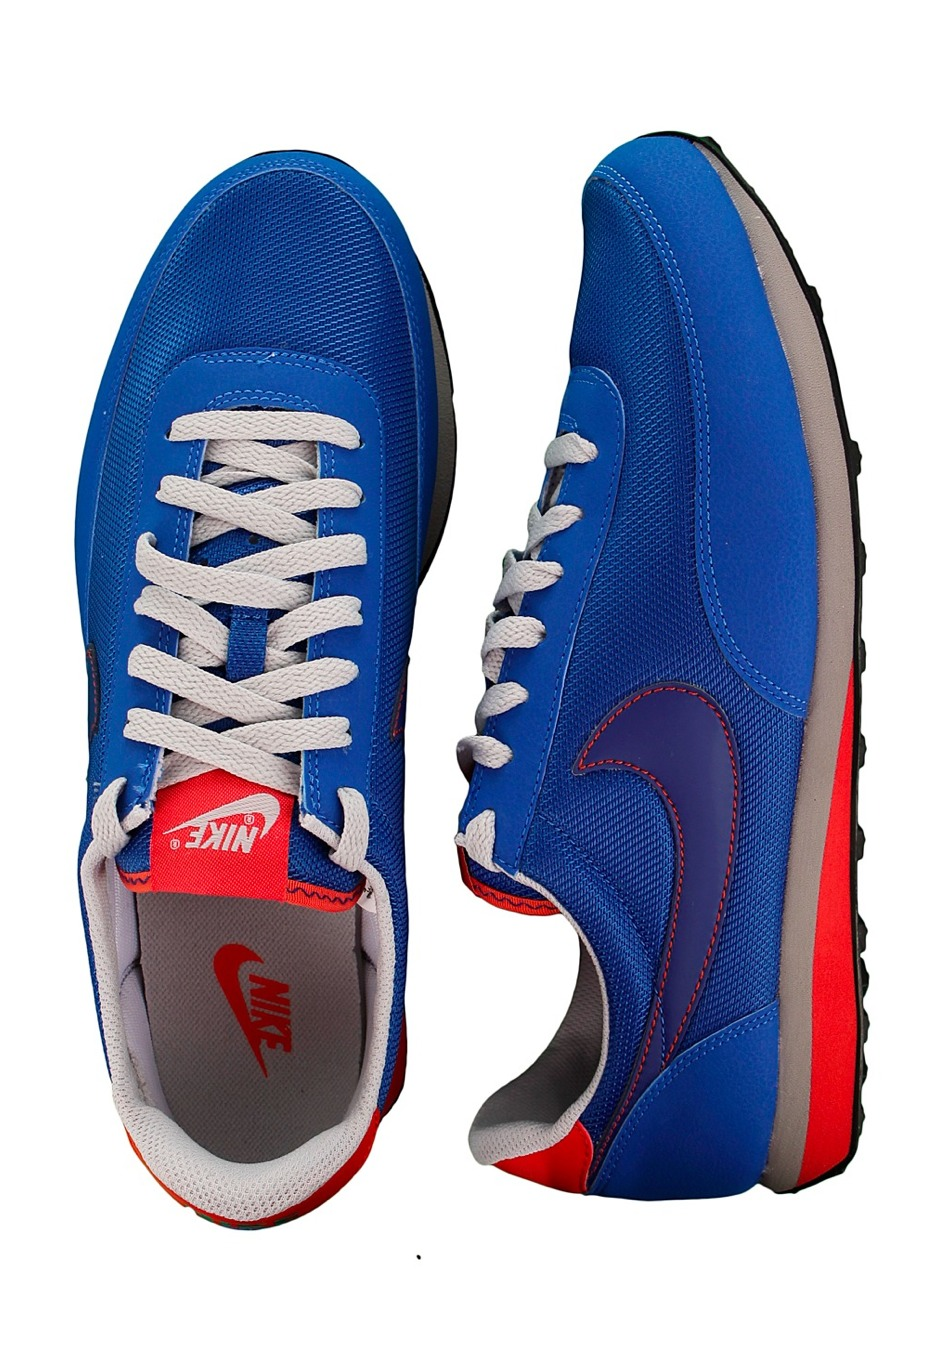 nike elite signal blue royal shoes impericon